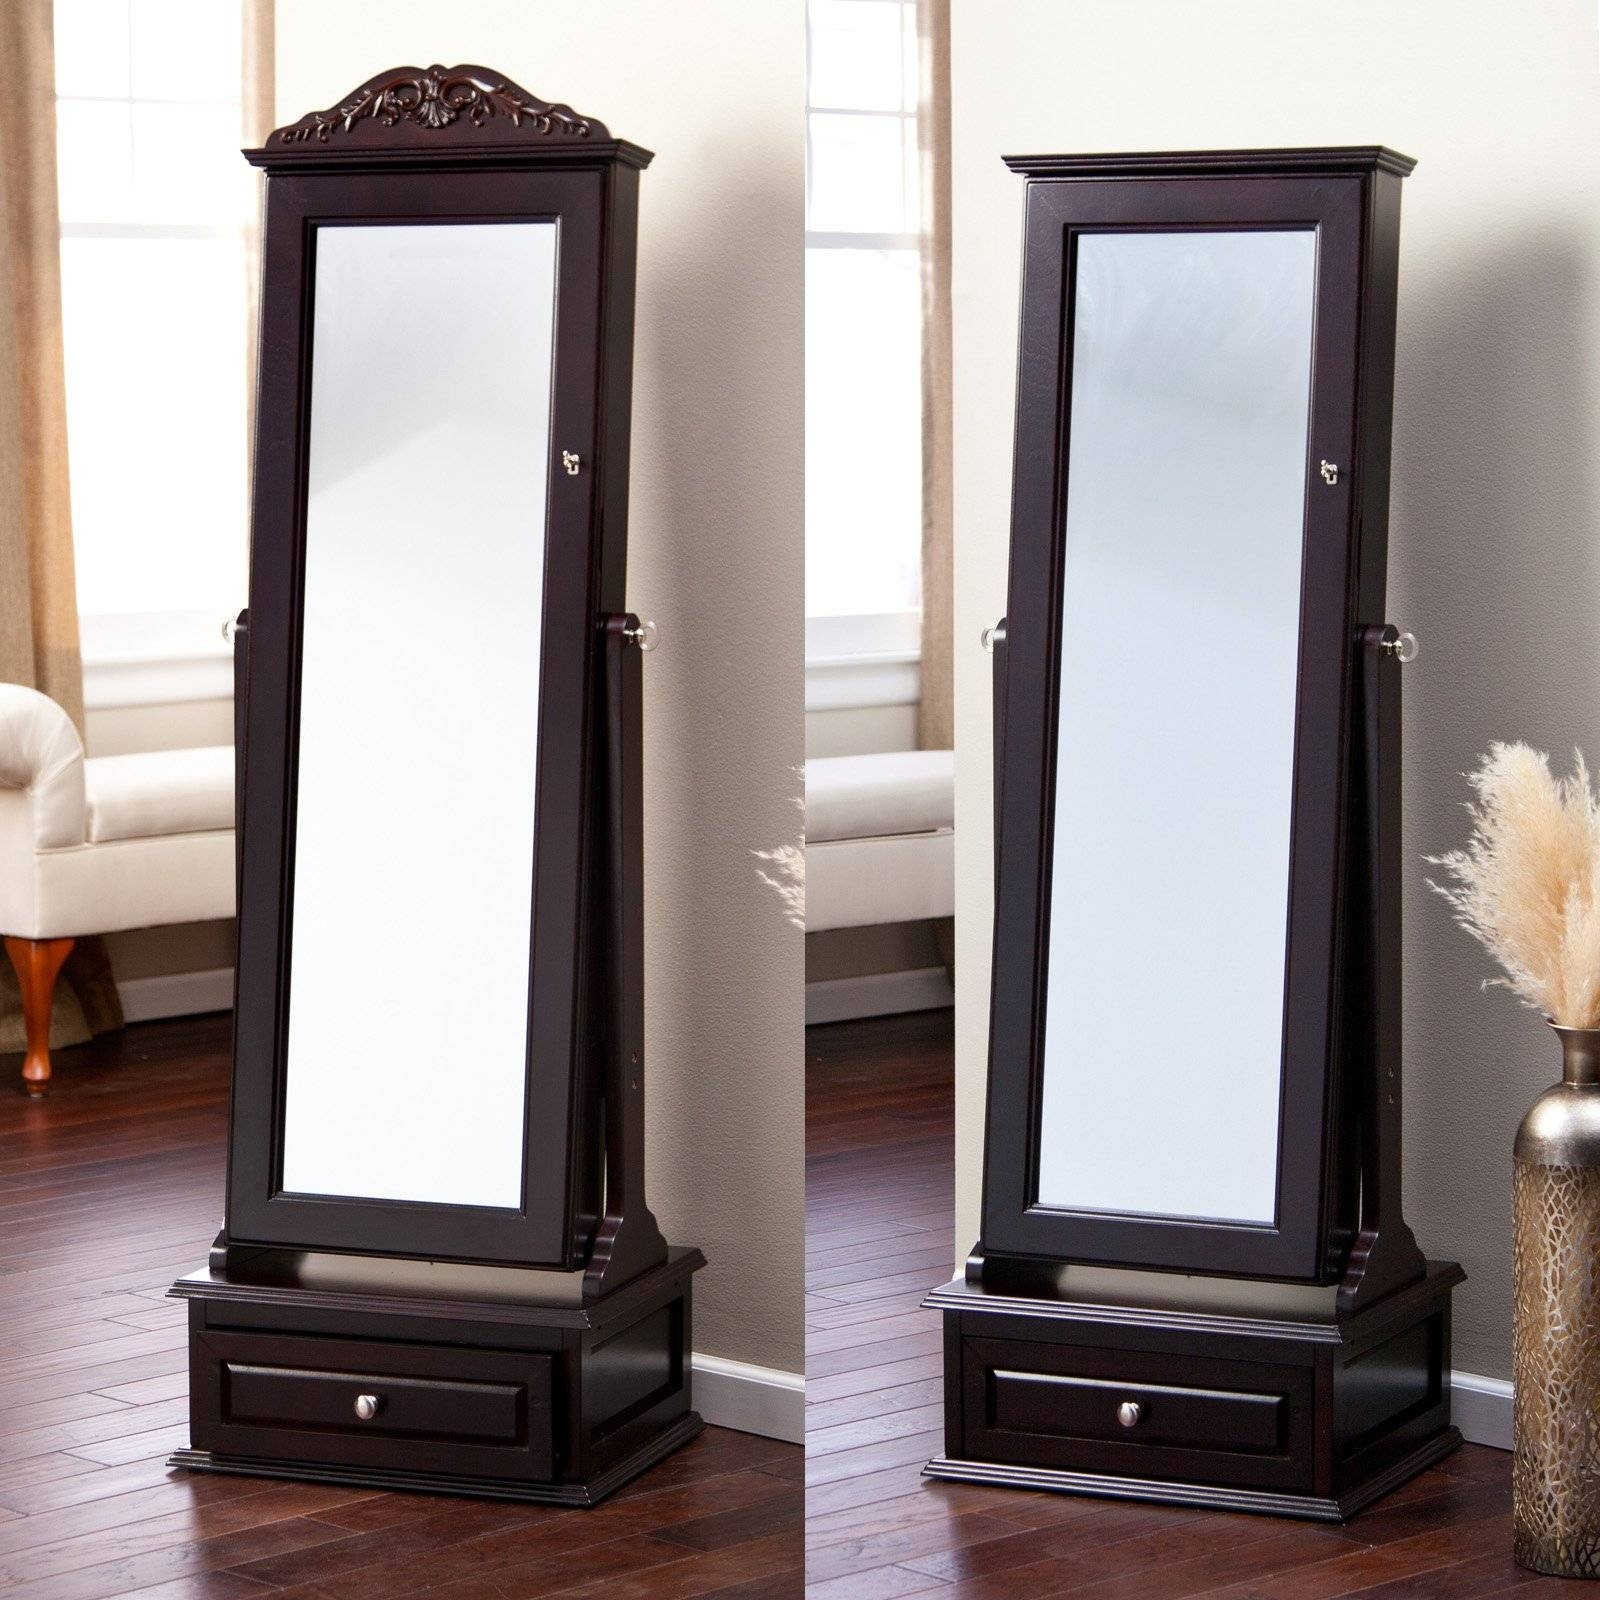 Furniture: Cheval Mirror | Floor Standing Mirror | Kids Cheval Mirror Throughout Cheval Free Standing Mirrors (View 5 of 15)